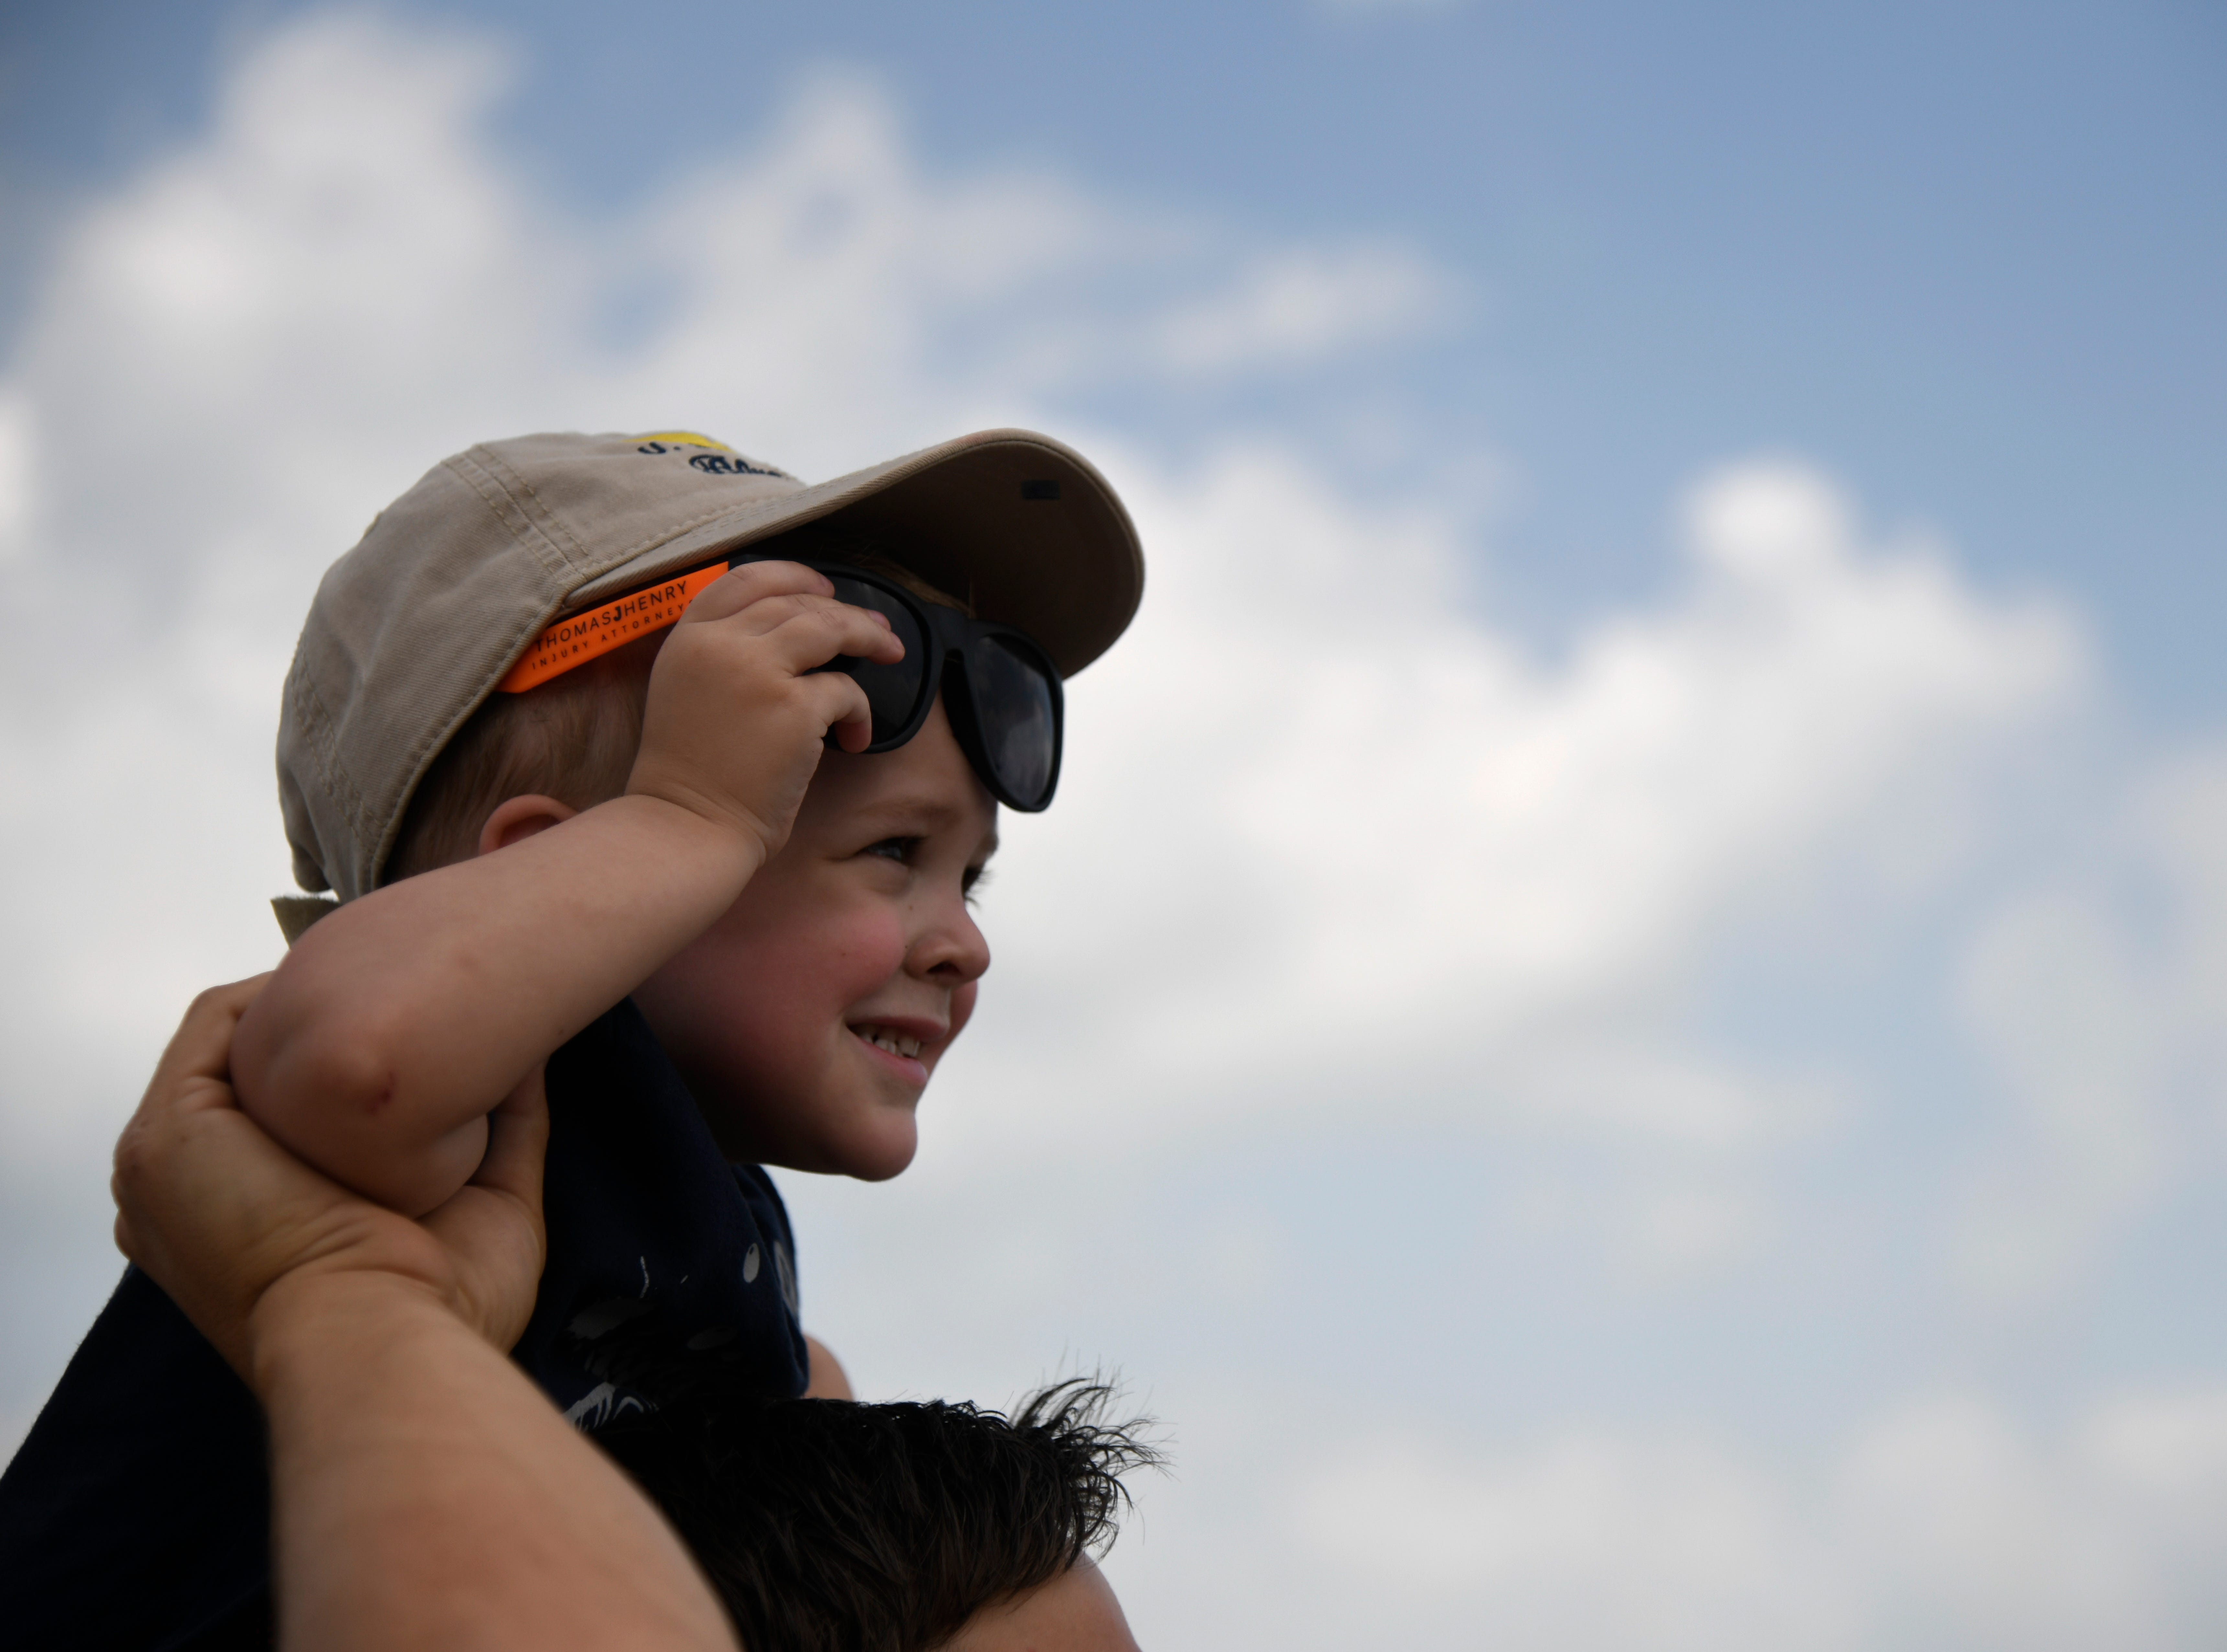 Two-year-old William Corey sits on his dad's shoulders during the Wings Over South Texas Air Show, Saturday, April 13, 2019, at NAS Corpus Christi. This is Corey's first air show and he says he is excited to see the Blue Angels.